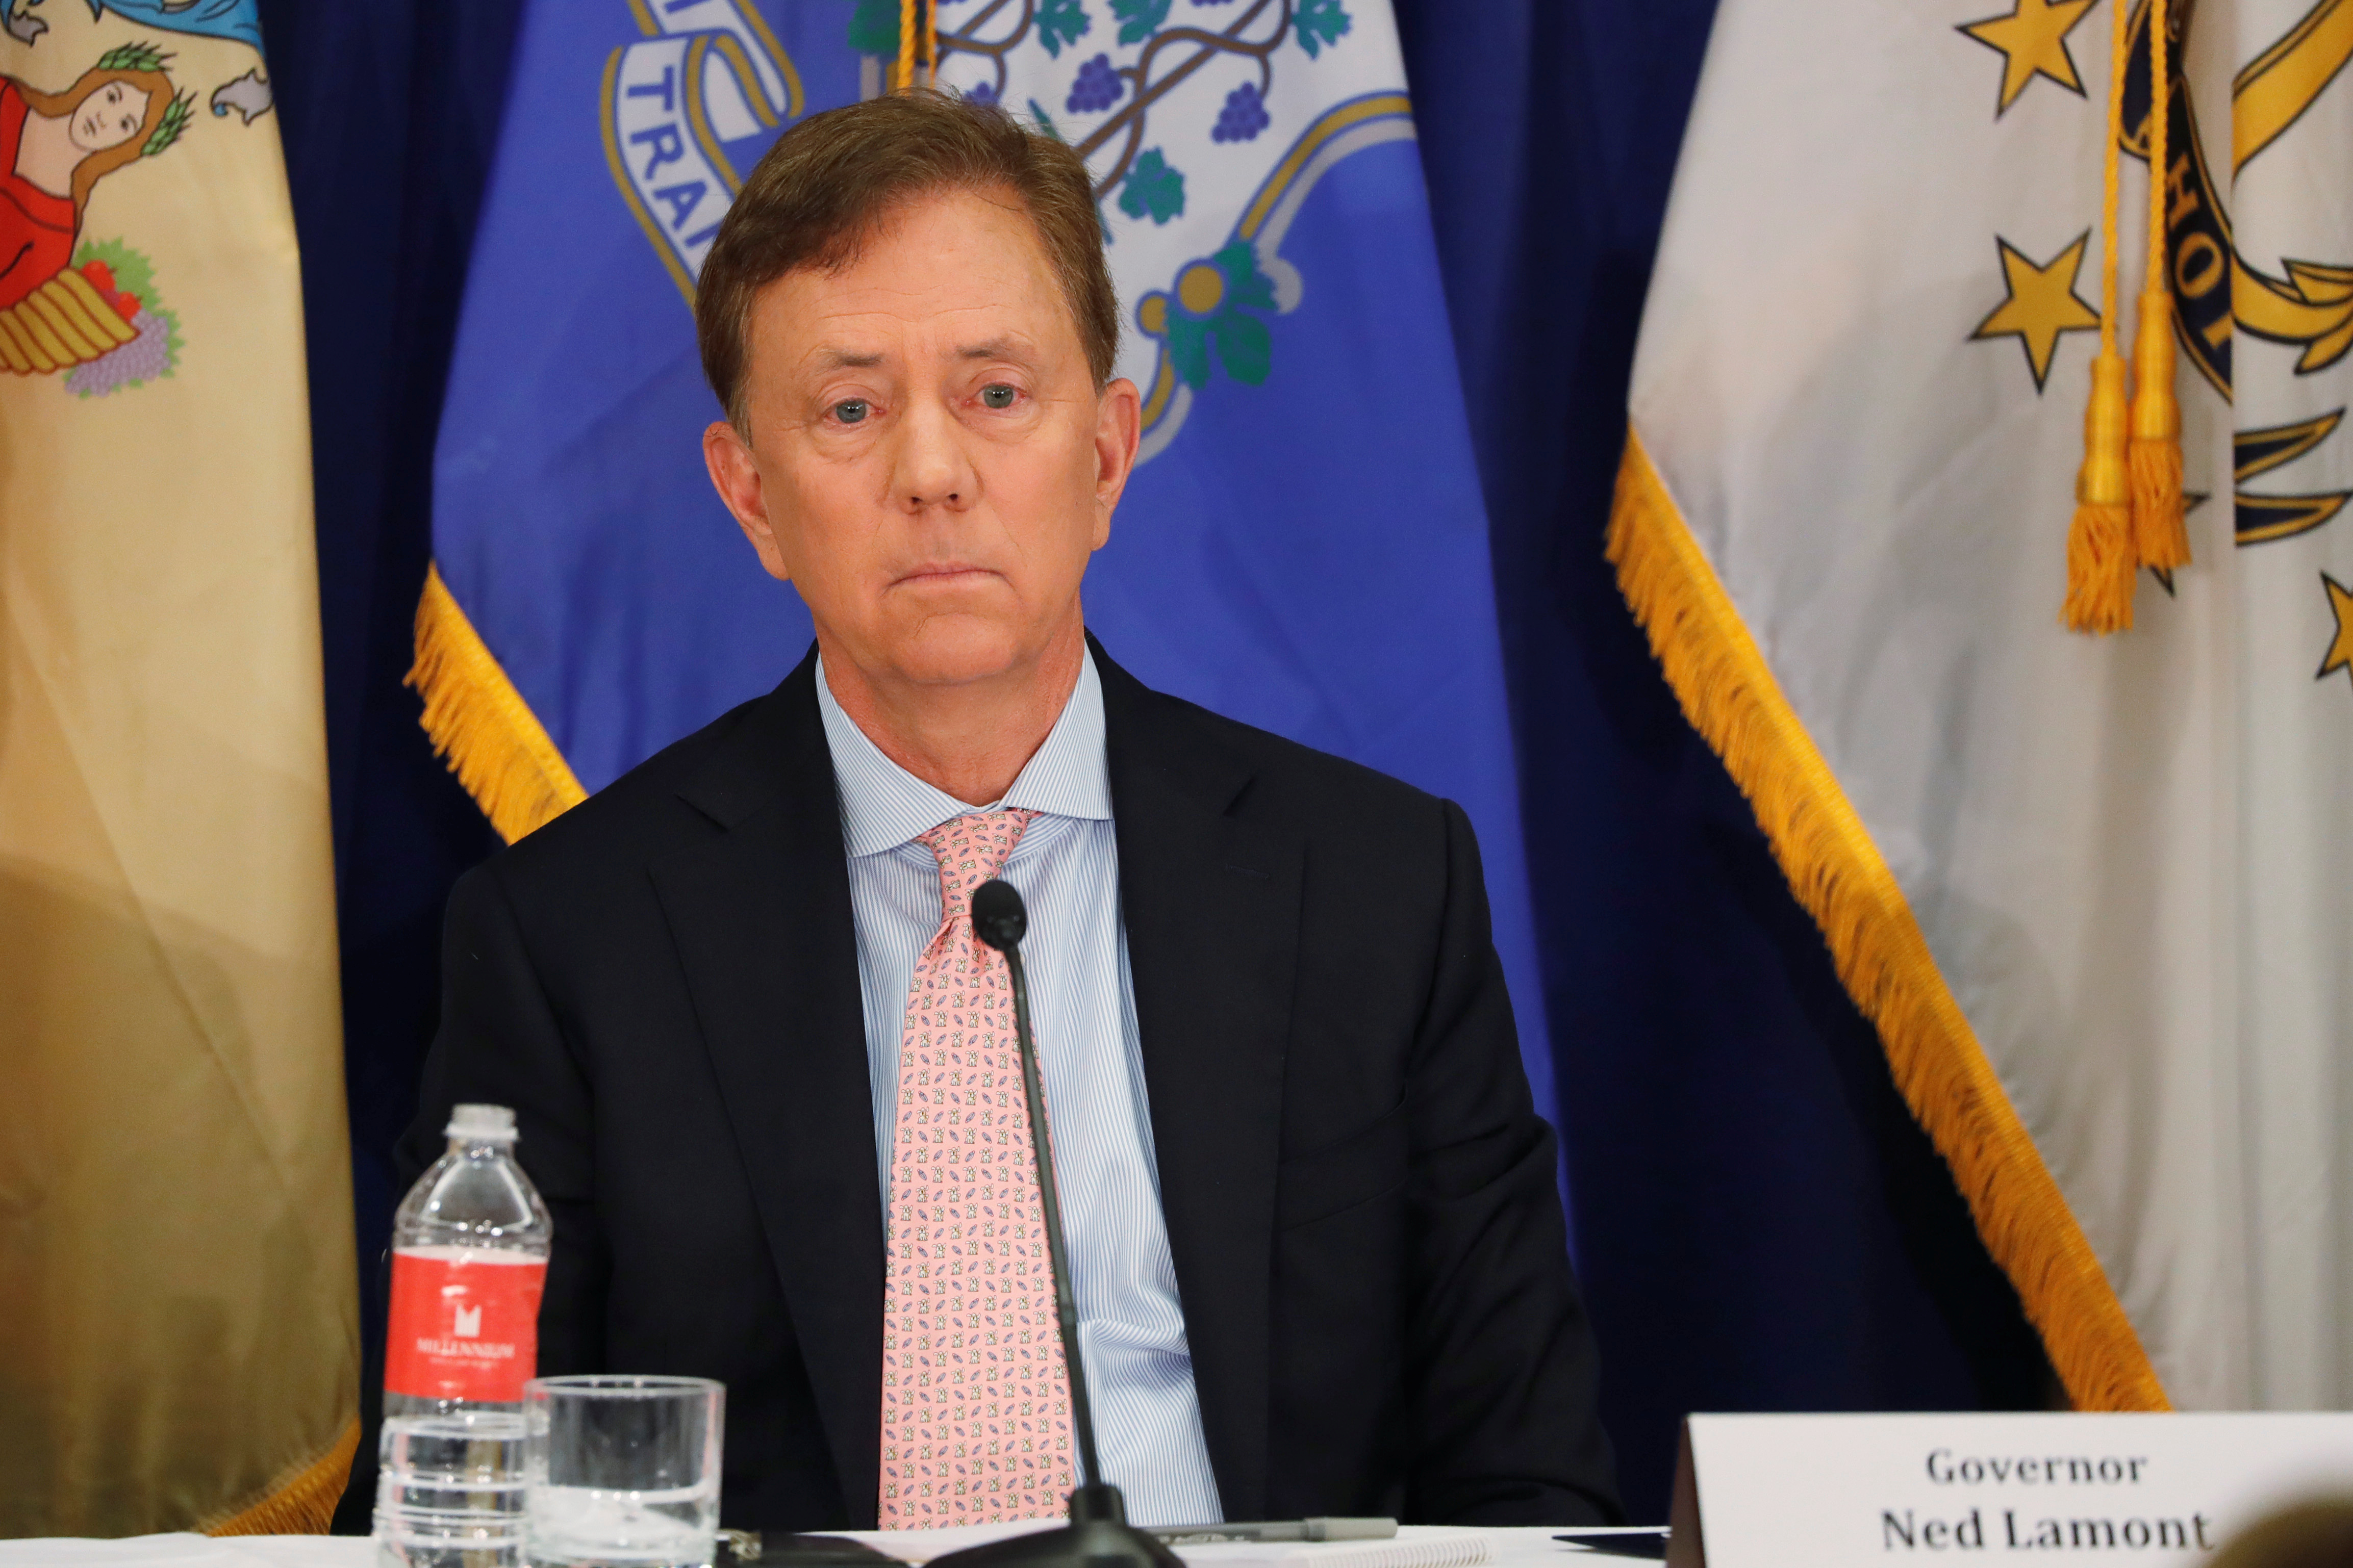 Connecticut Governor Ned Lamont takes part in a regional cannabis and vaping summit in New York City, New York, U.S., October 17, 2019. REUTERS/Lucas Jackson